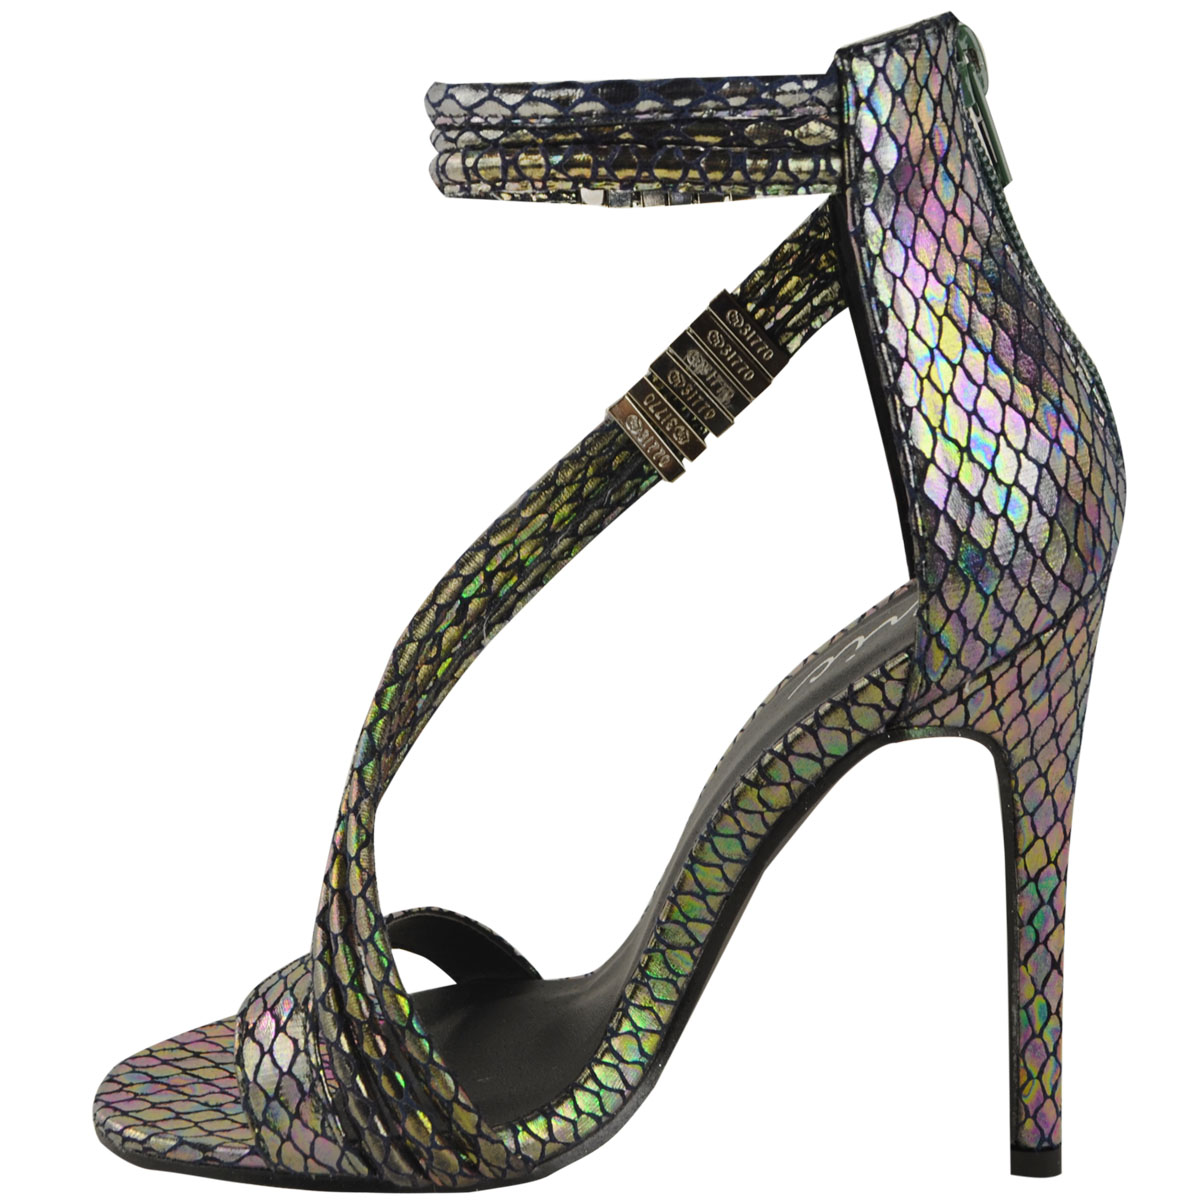 H M - Fashion and quality at the best price H M US Fashion ankle cuff sandals